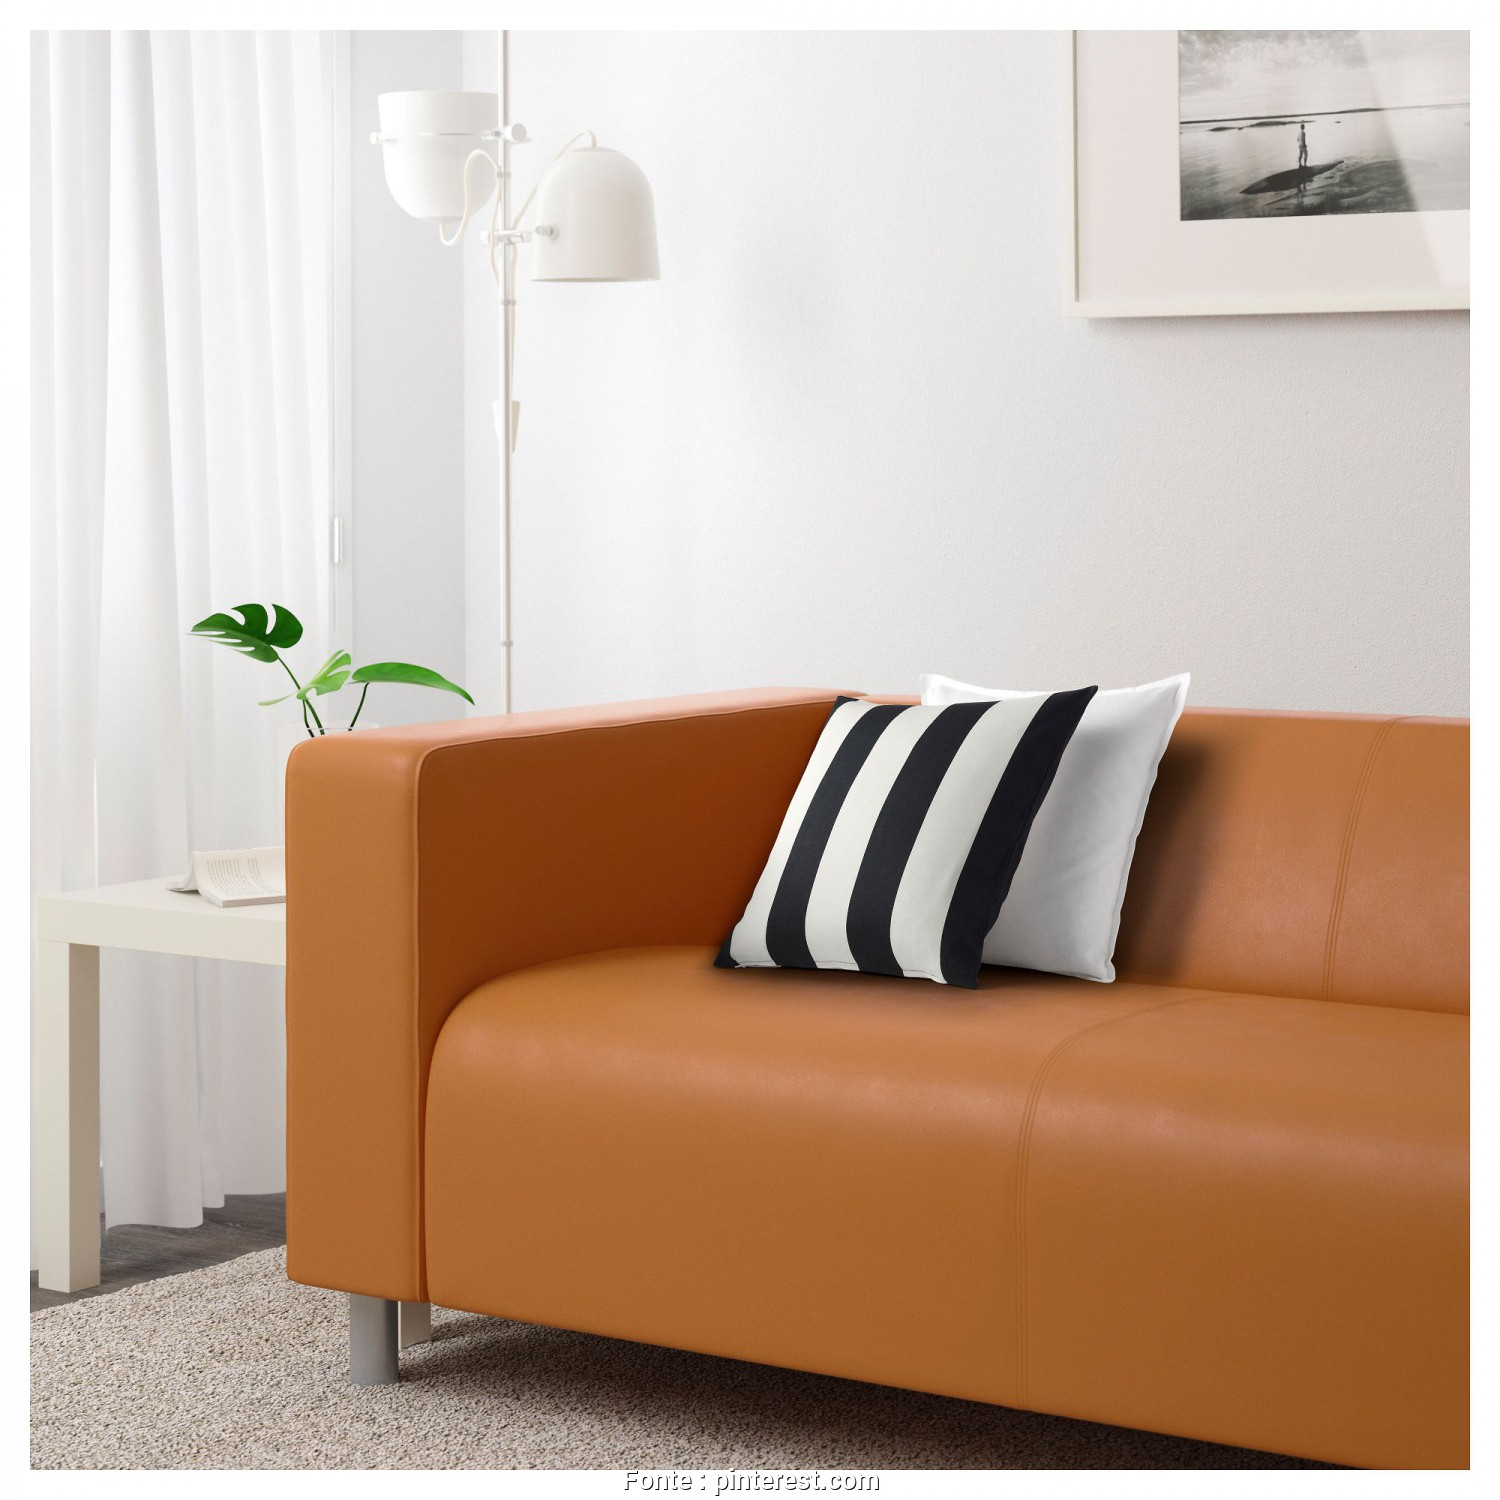 Ikea Klippan Loveseat Dimensions, Originale IKEA, KLIPPAN, Loveseat,, Cover Is Easy To Keep Clean As It, Be Wiped With A Damp Sponge Or A Mild Detergent.10-Year Limited Warrranty